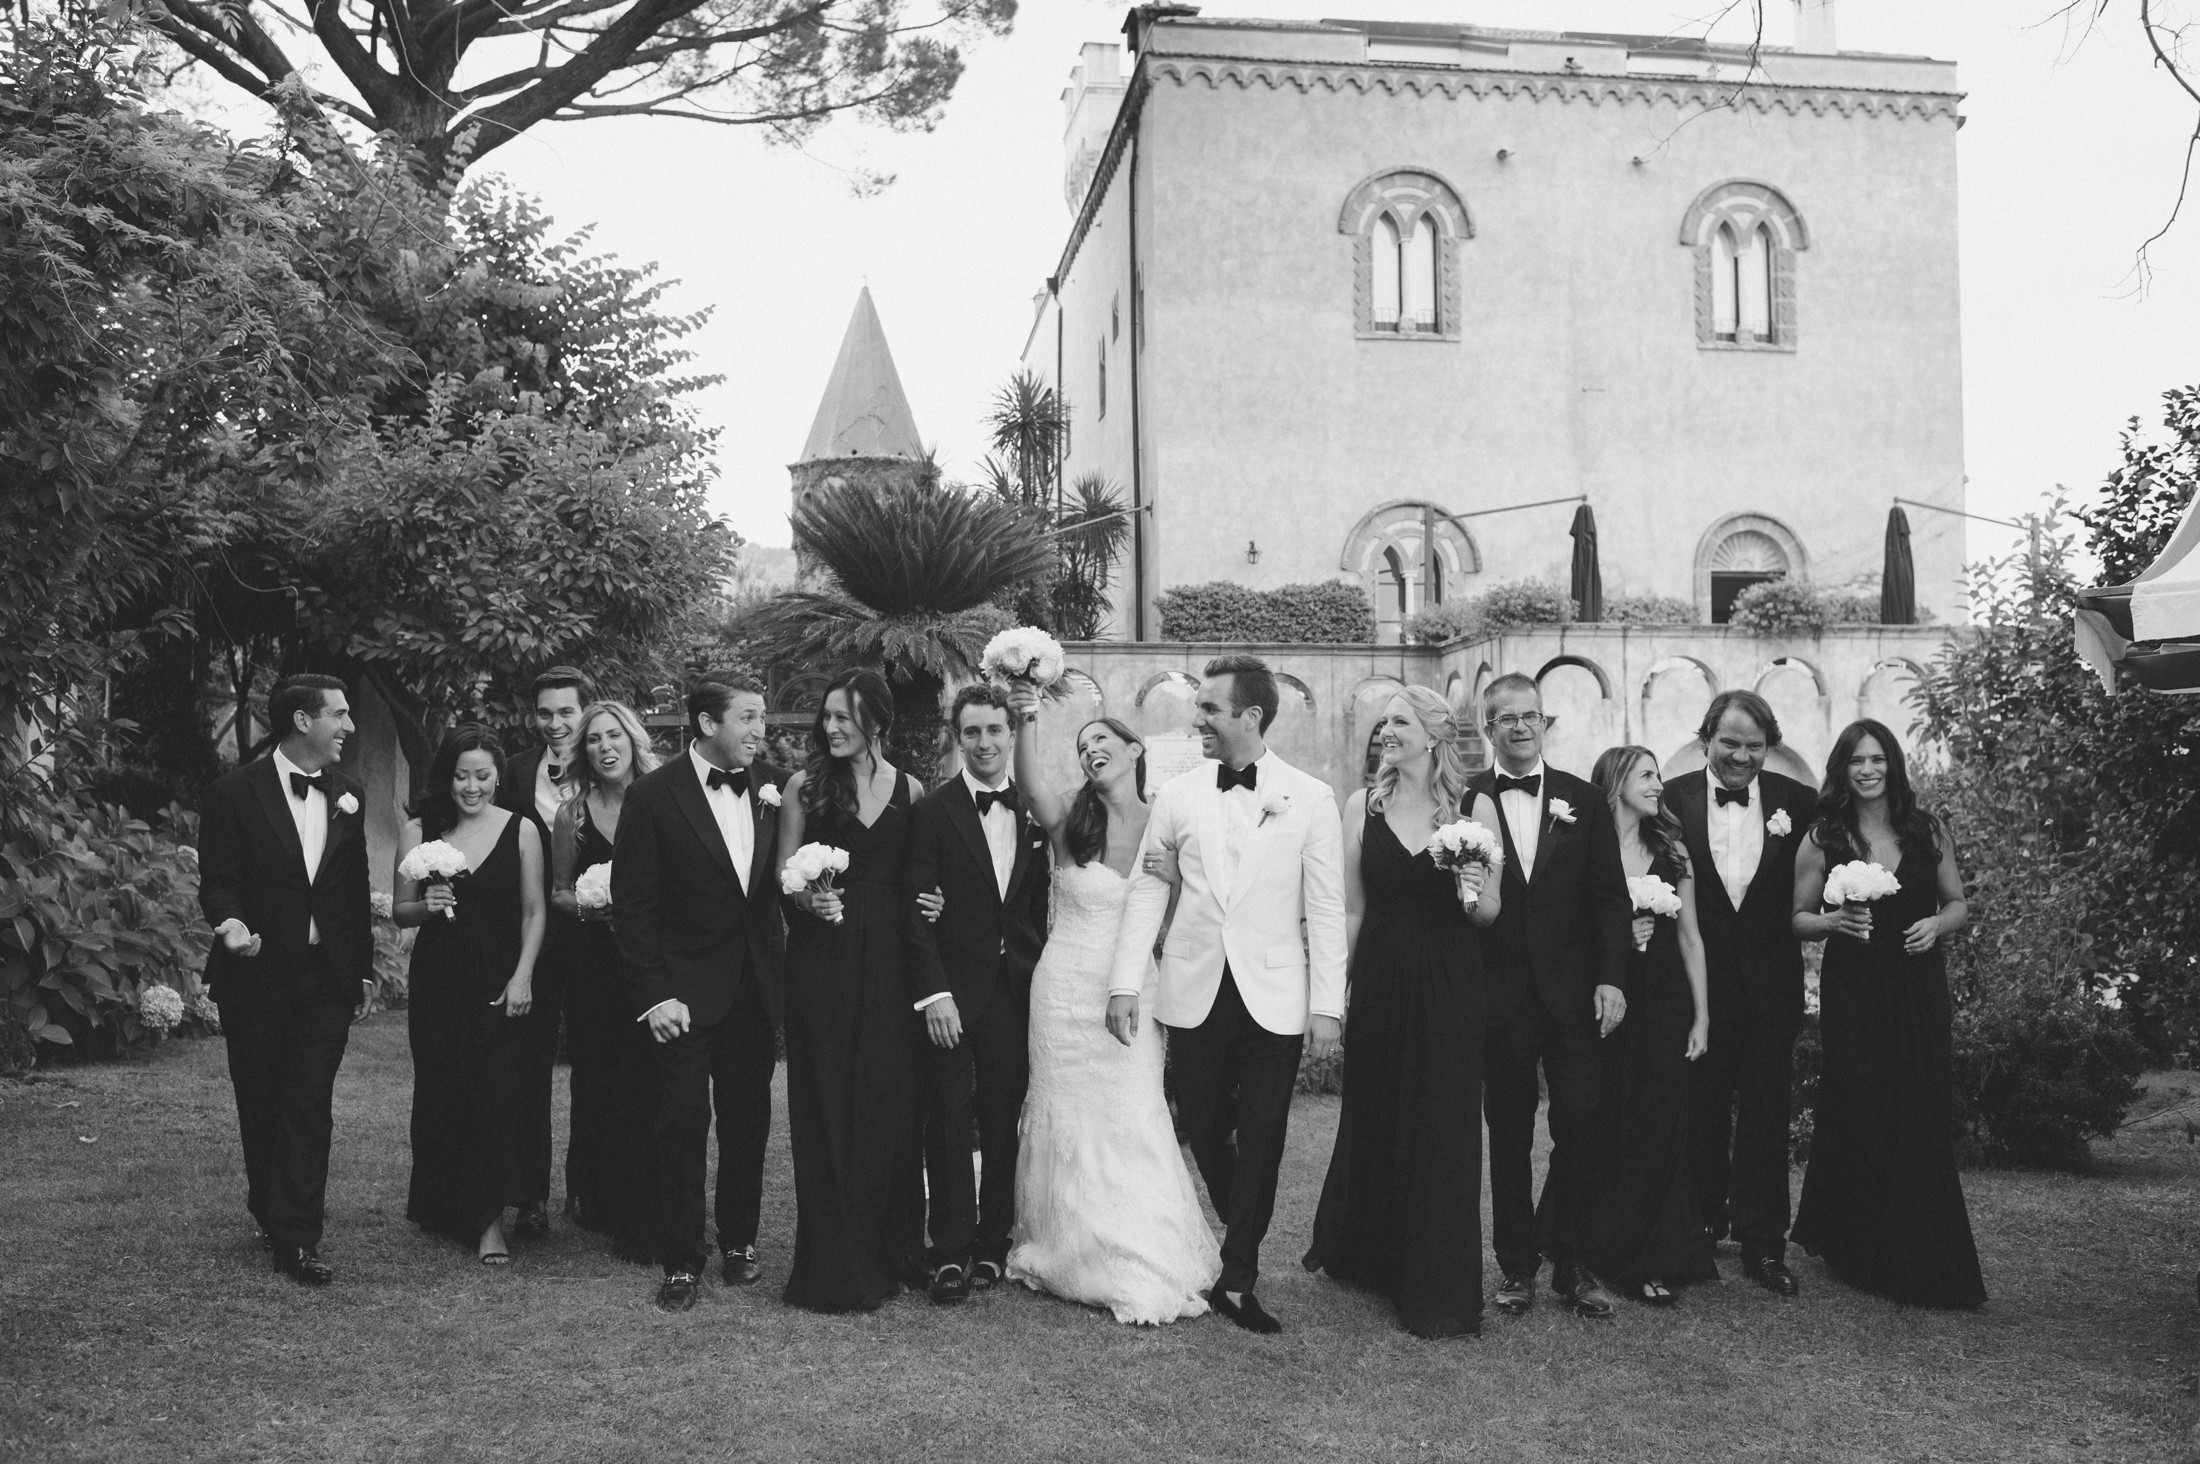 the bride and the groom with their best men and bridesmaids